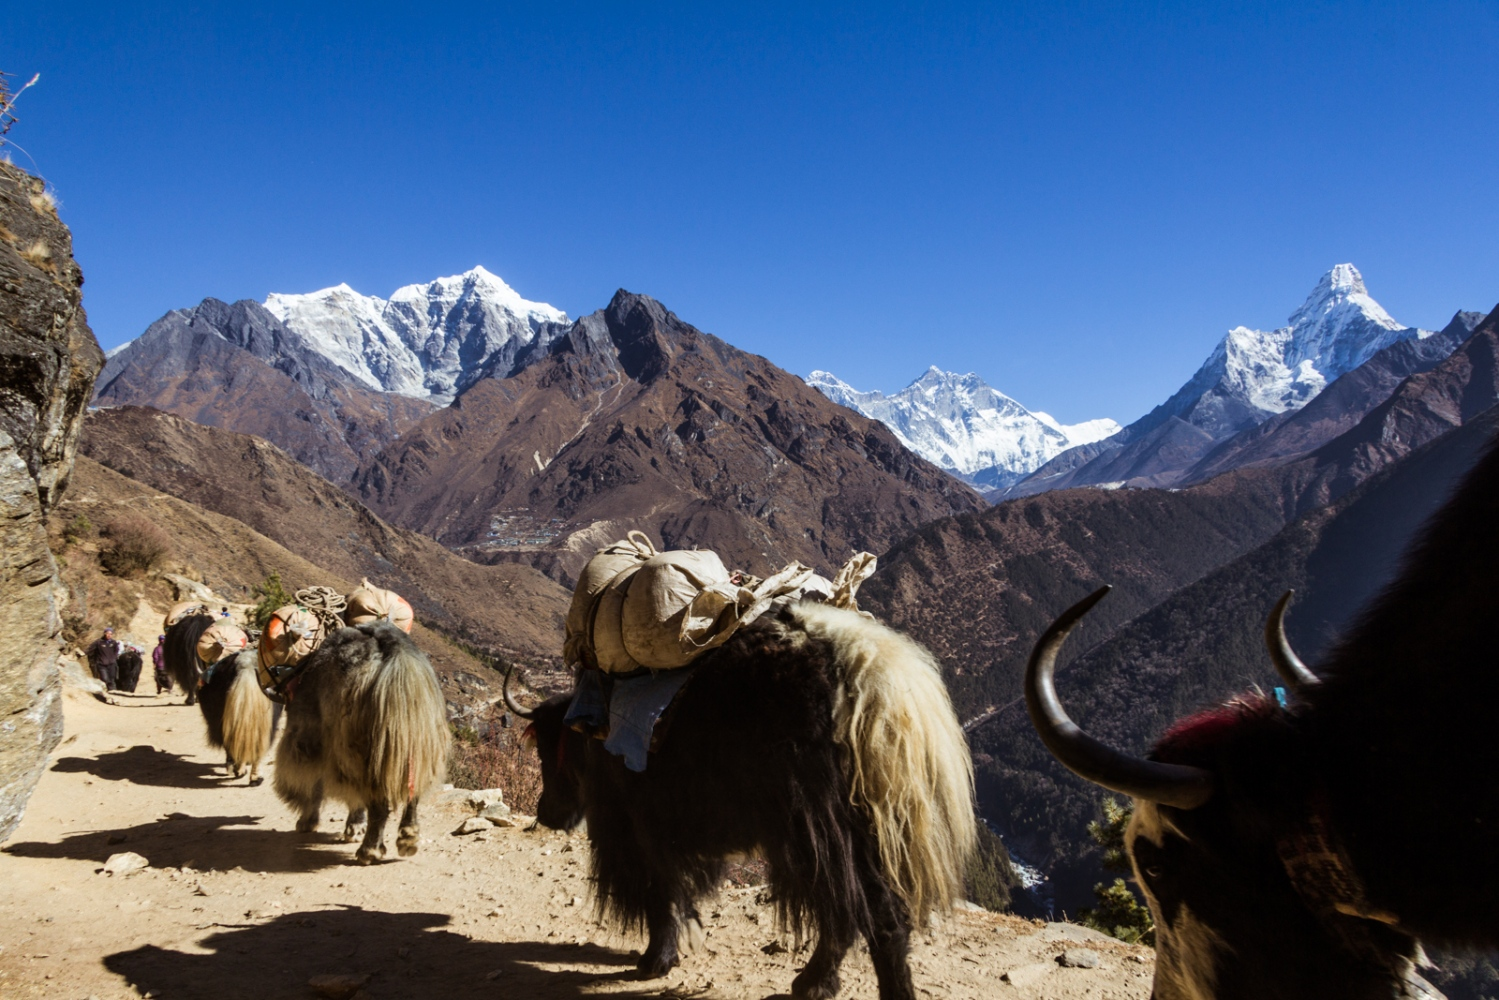 Photo by Ashley Crowther @ashleycrowtherorg for @everydayclimatechange: Yak's carry supplies high into the Everest Himalayan region located in Nepal. The Himalayas have long been called the Earth's third pole, as contains the world's largest stores of ice that are located outside of the polar regions. Due to this vast amount of ice the glaciers feed some of the largest rivers across Asia, including the Ganges, Yangtze, Indus, and Bhramaputra. These rivers and scores more, which cross international boundaries, support the lives of billions of people from agriculture to industry. As climate change intensifies, this gigantic store of ice that is locked up in the mountains is quickly melting. The vast majority of glaciers across the Himalayan region are retreating at a rapid pace. The melting, in the short-term, may provide greater access to water resources throughout Asia. However, in the long-term, the threat that global warming poses on the Earth's third pole threatens the water security of billions, as the ice continually retreats more and more.